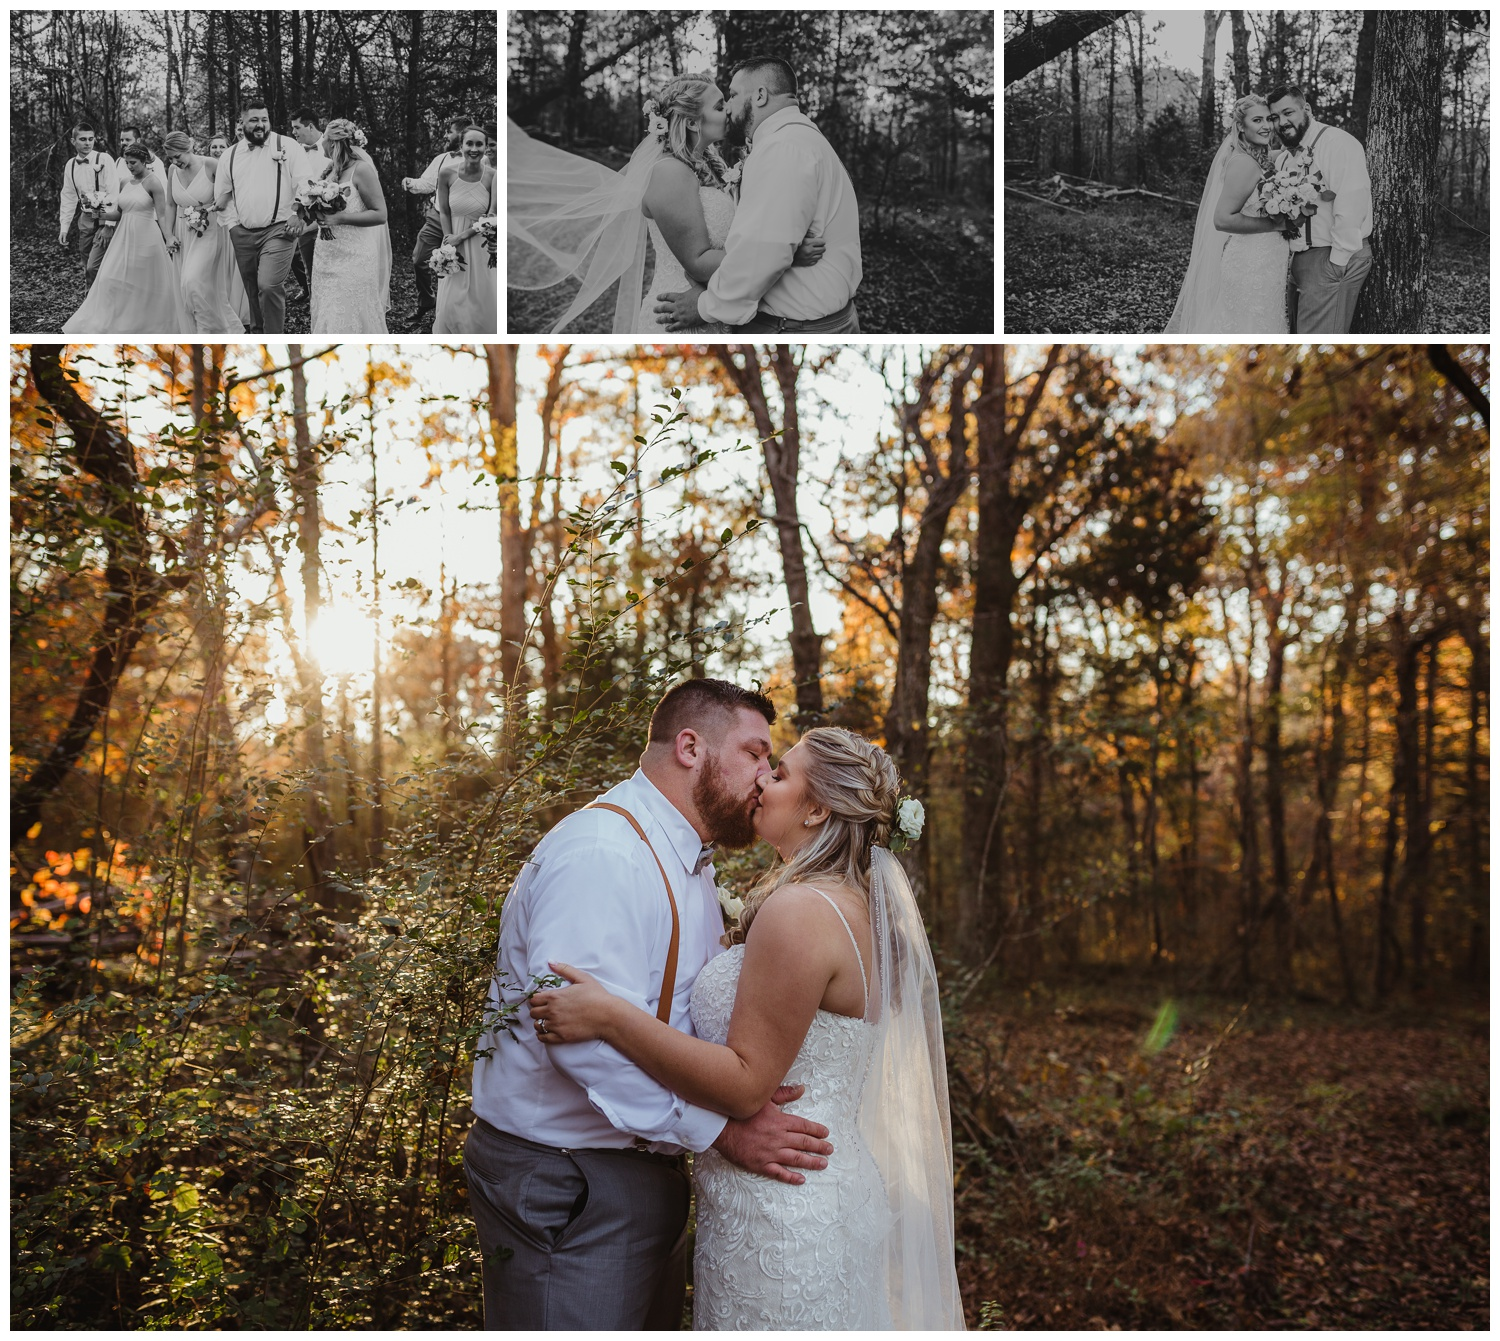 The bride and groom take a moment to kiss in the woods after their wedding ceremony at The Warren Estate, images by Rose Trail Images of Rolesville, NC.